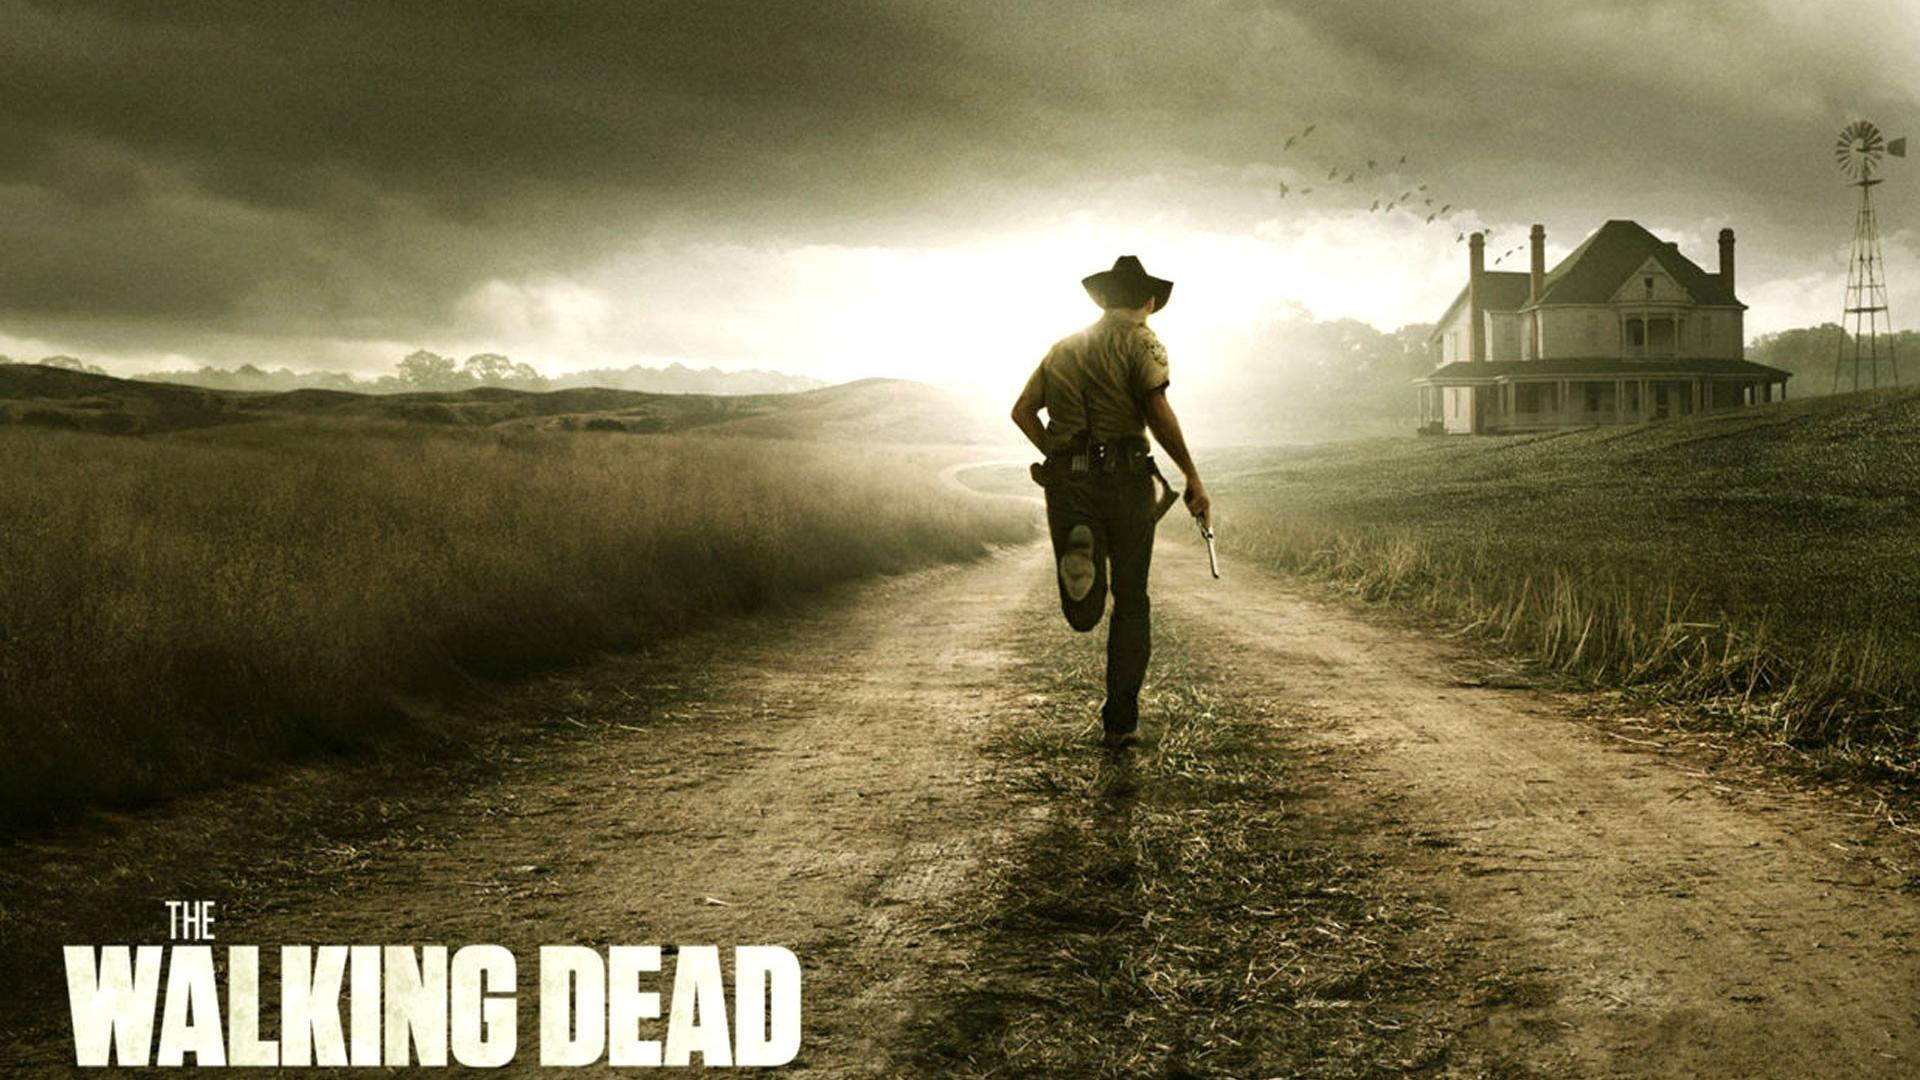 The Walking Dead HD wallpapers free download